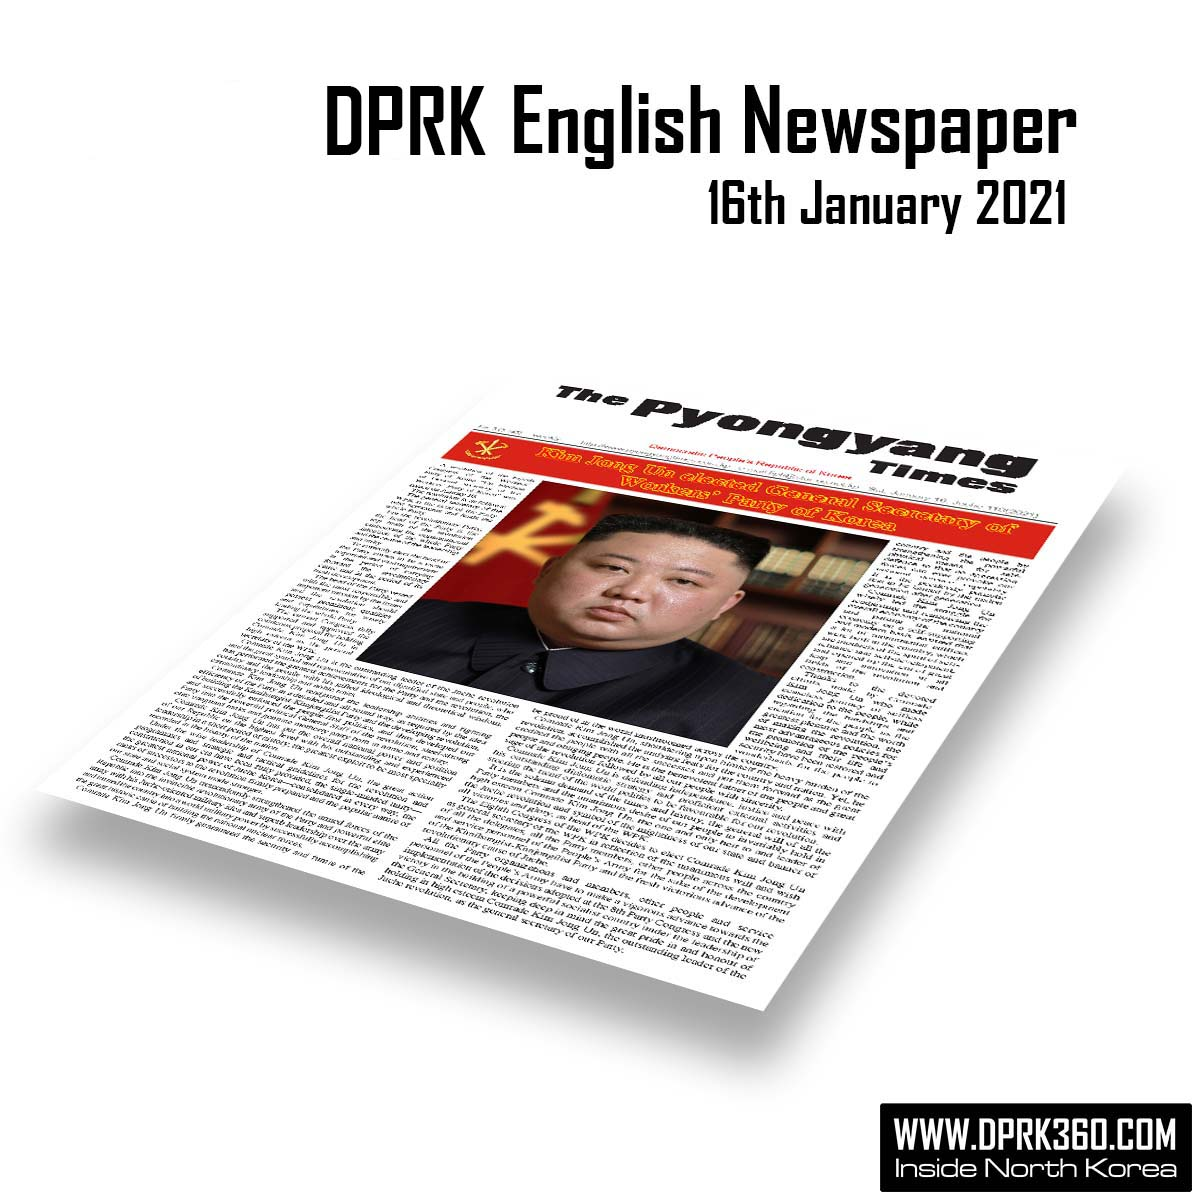 DPRK English Newspaper – 2021 January 16th